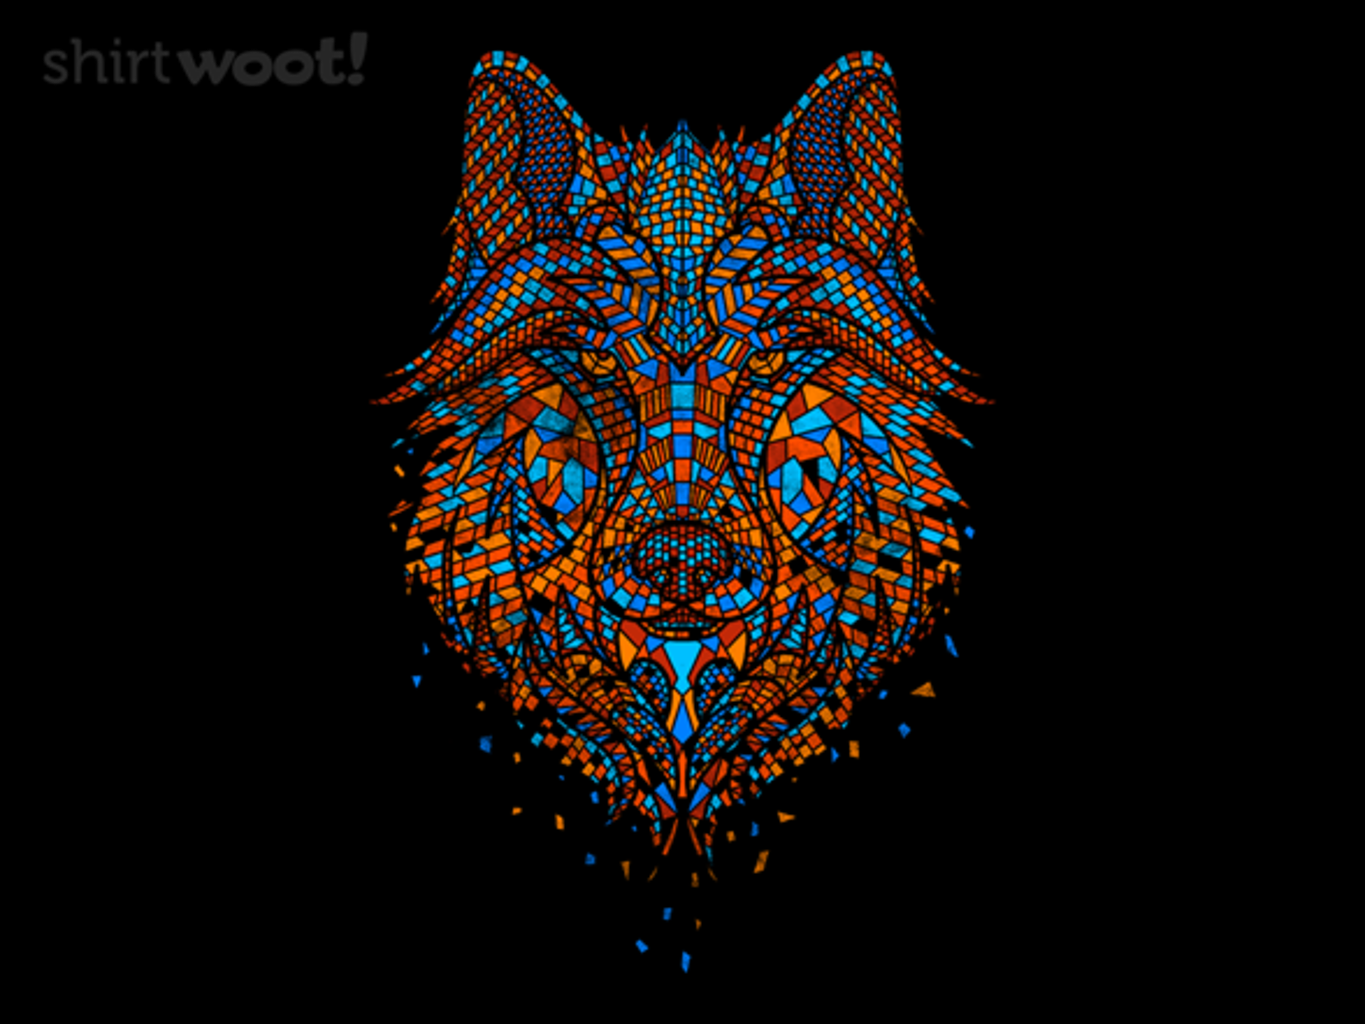 Woot!: Fragile Wolf